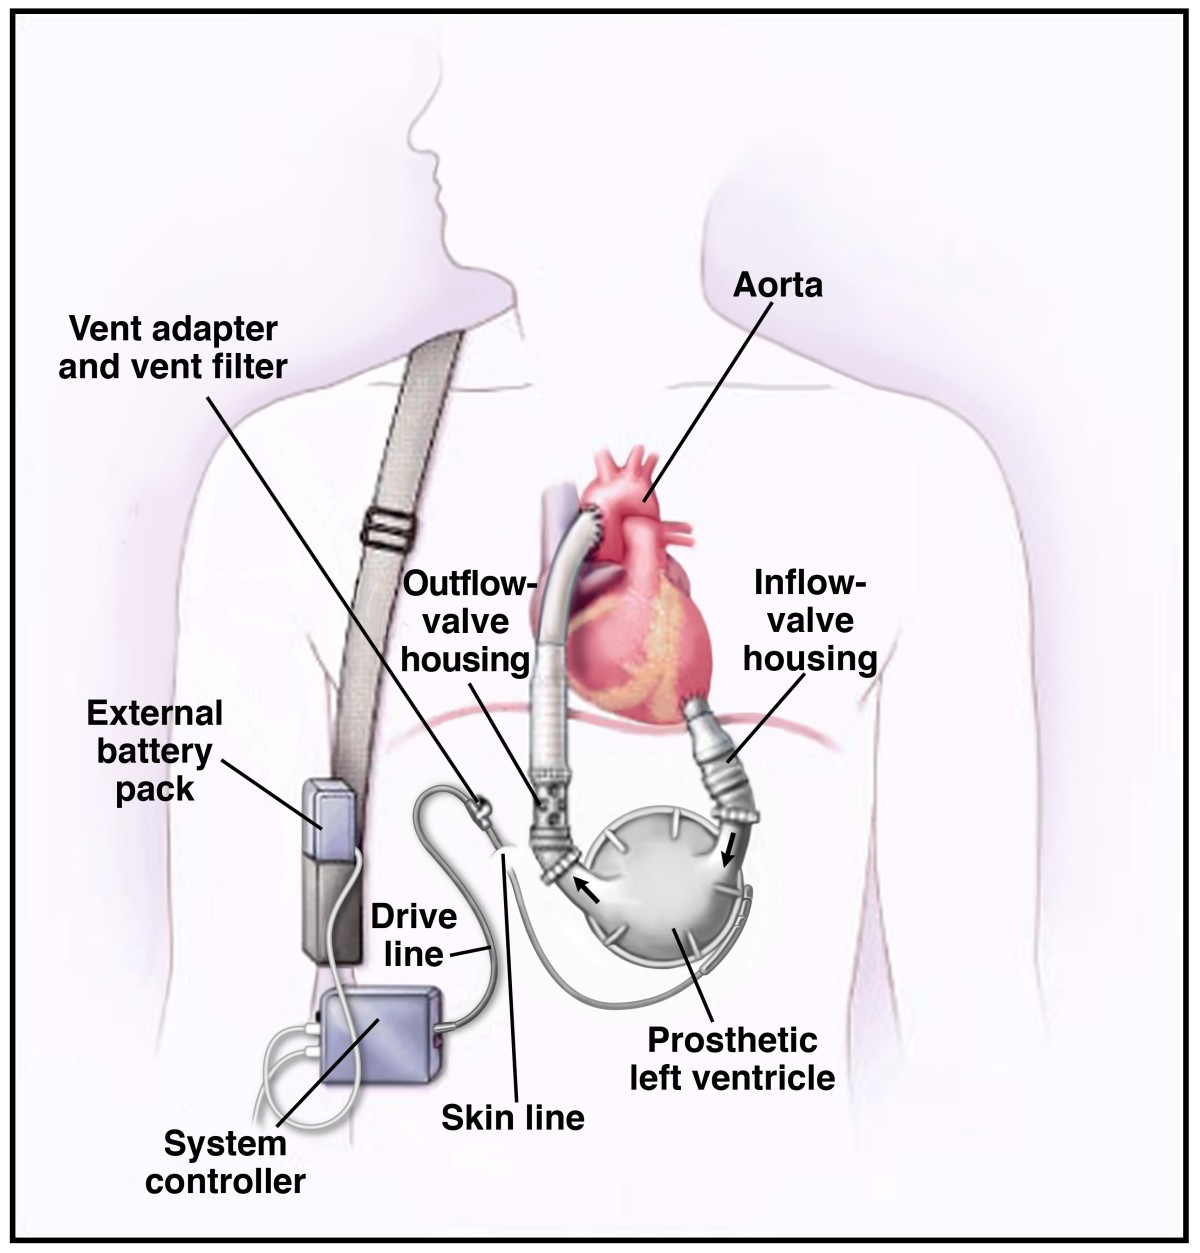 ethical challenges with the left ventricular assist device as a Skin Layers Diagram Labeled figure 1